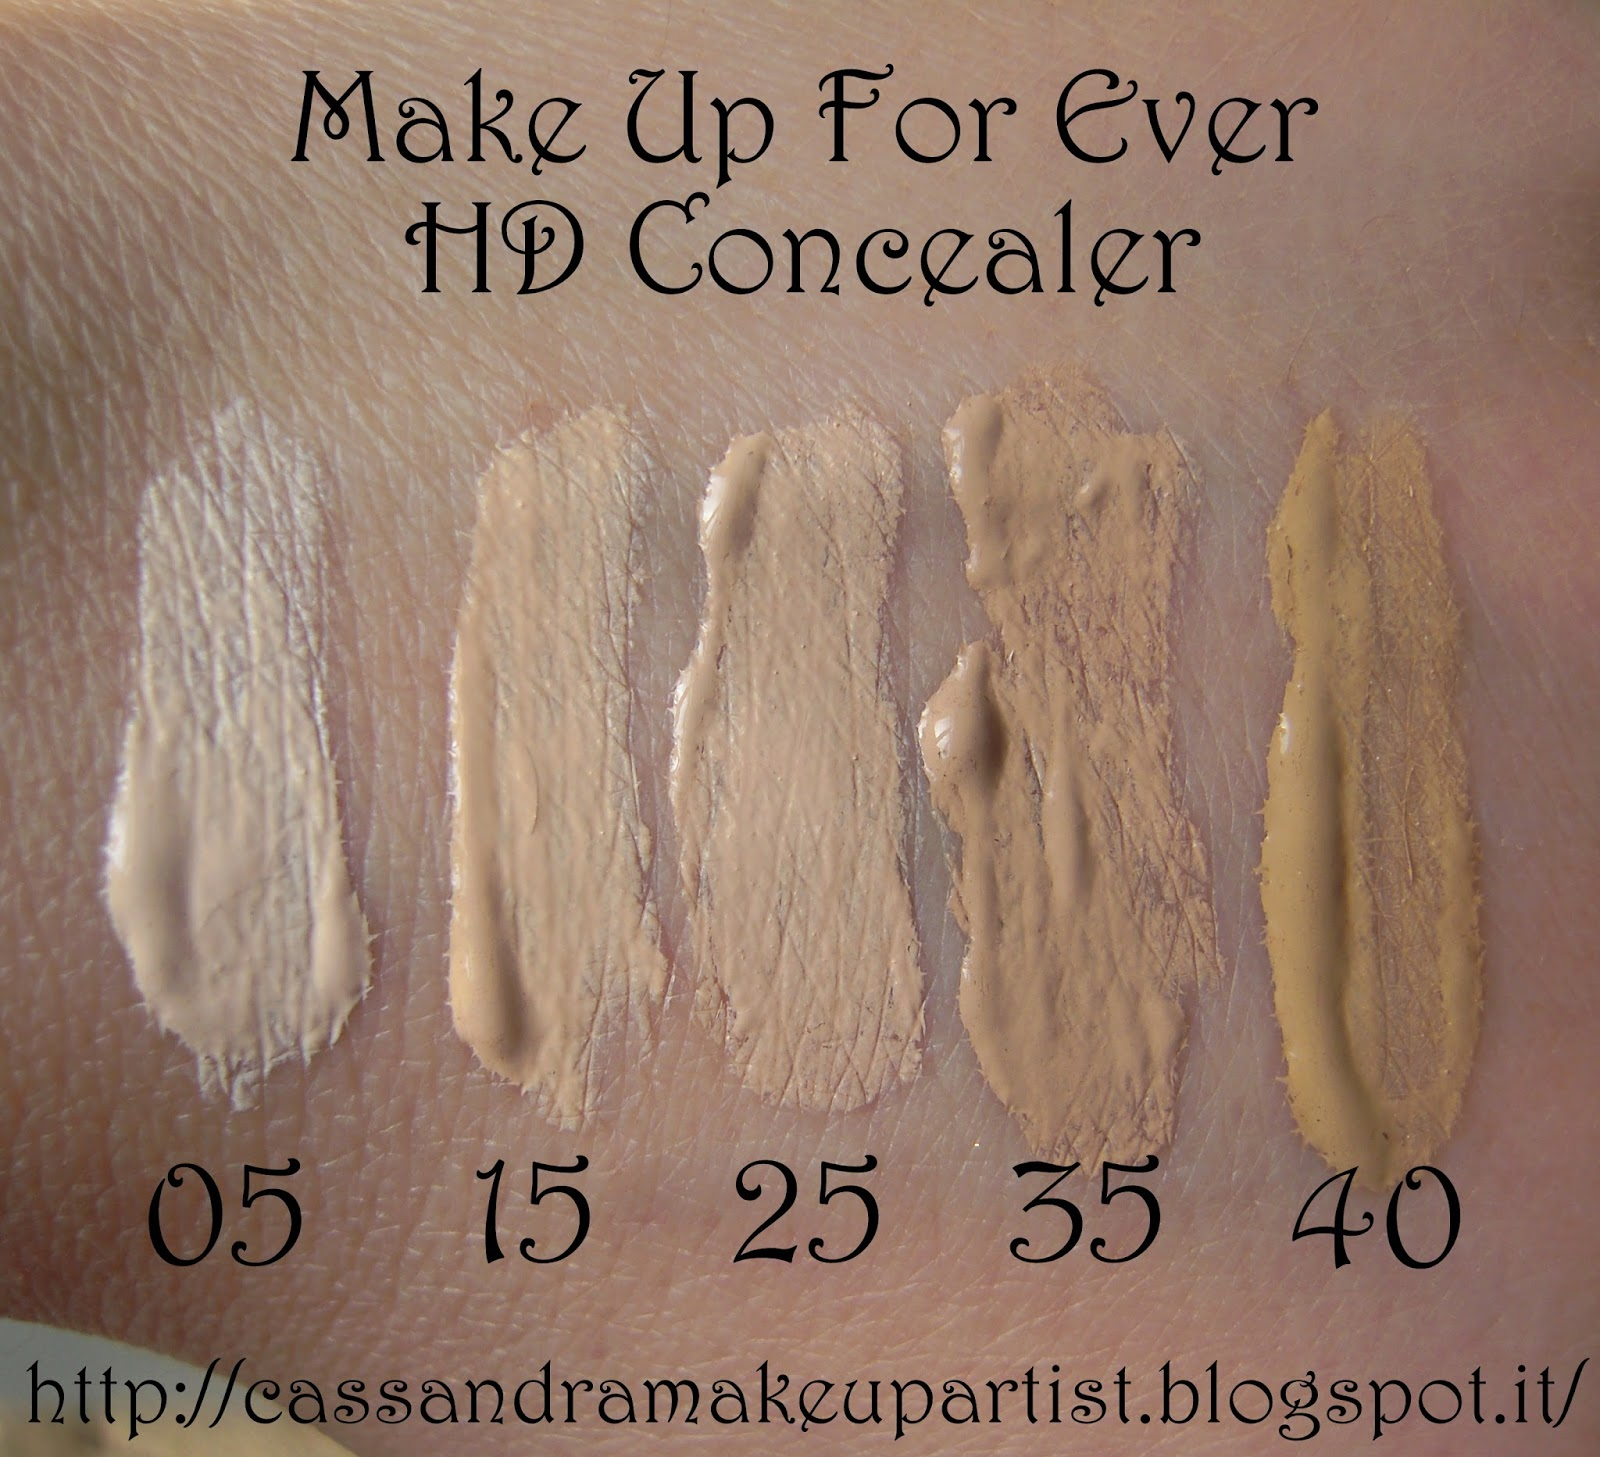 HD CONCEALER - MUFE - make up for ever - swatch - recensione - review - 05 - 15 - 25 - 35 - 40